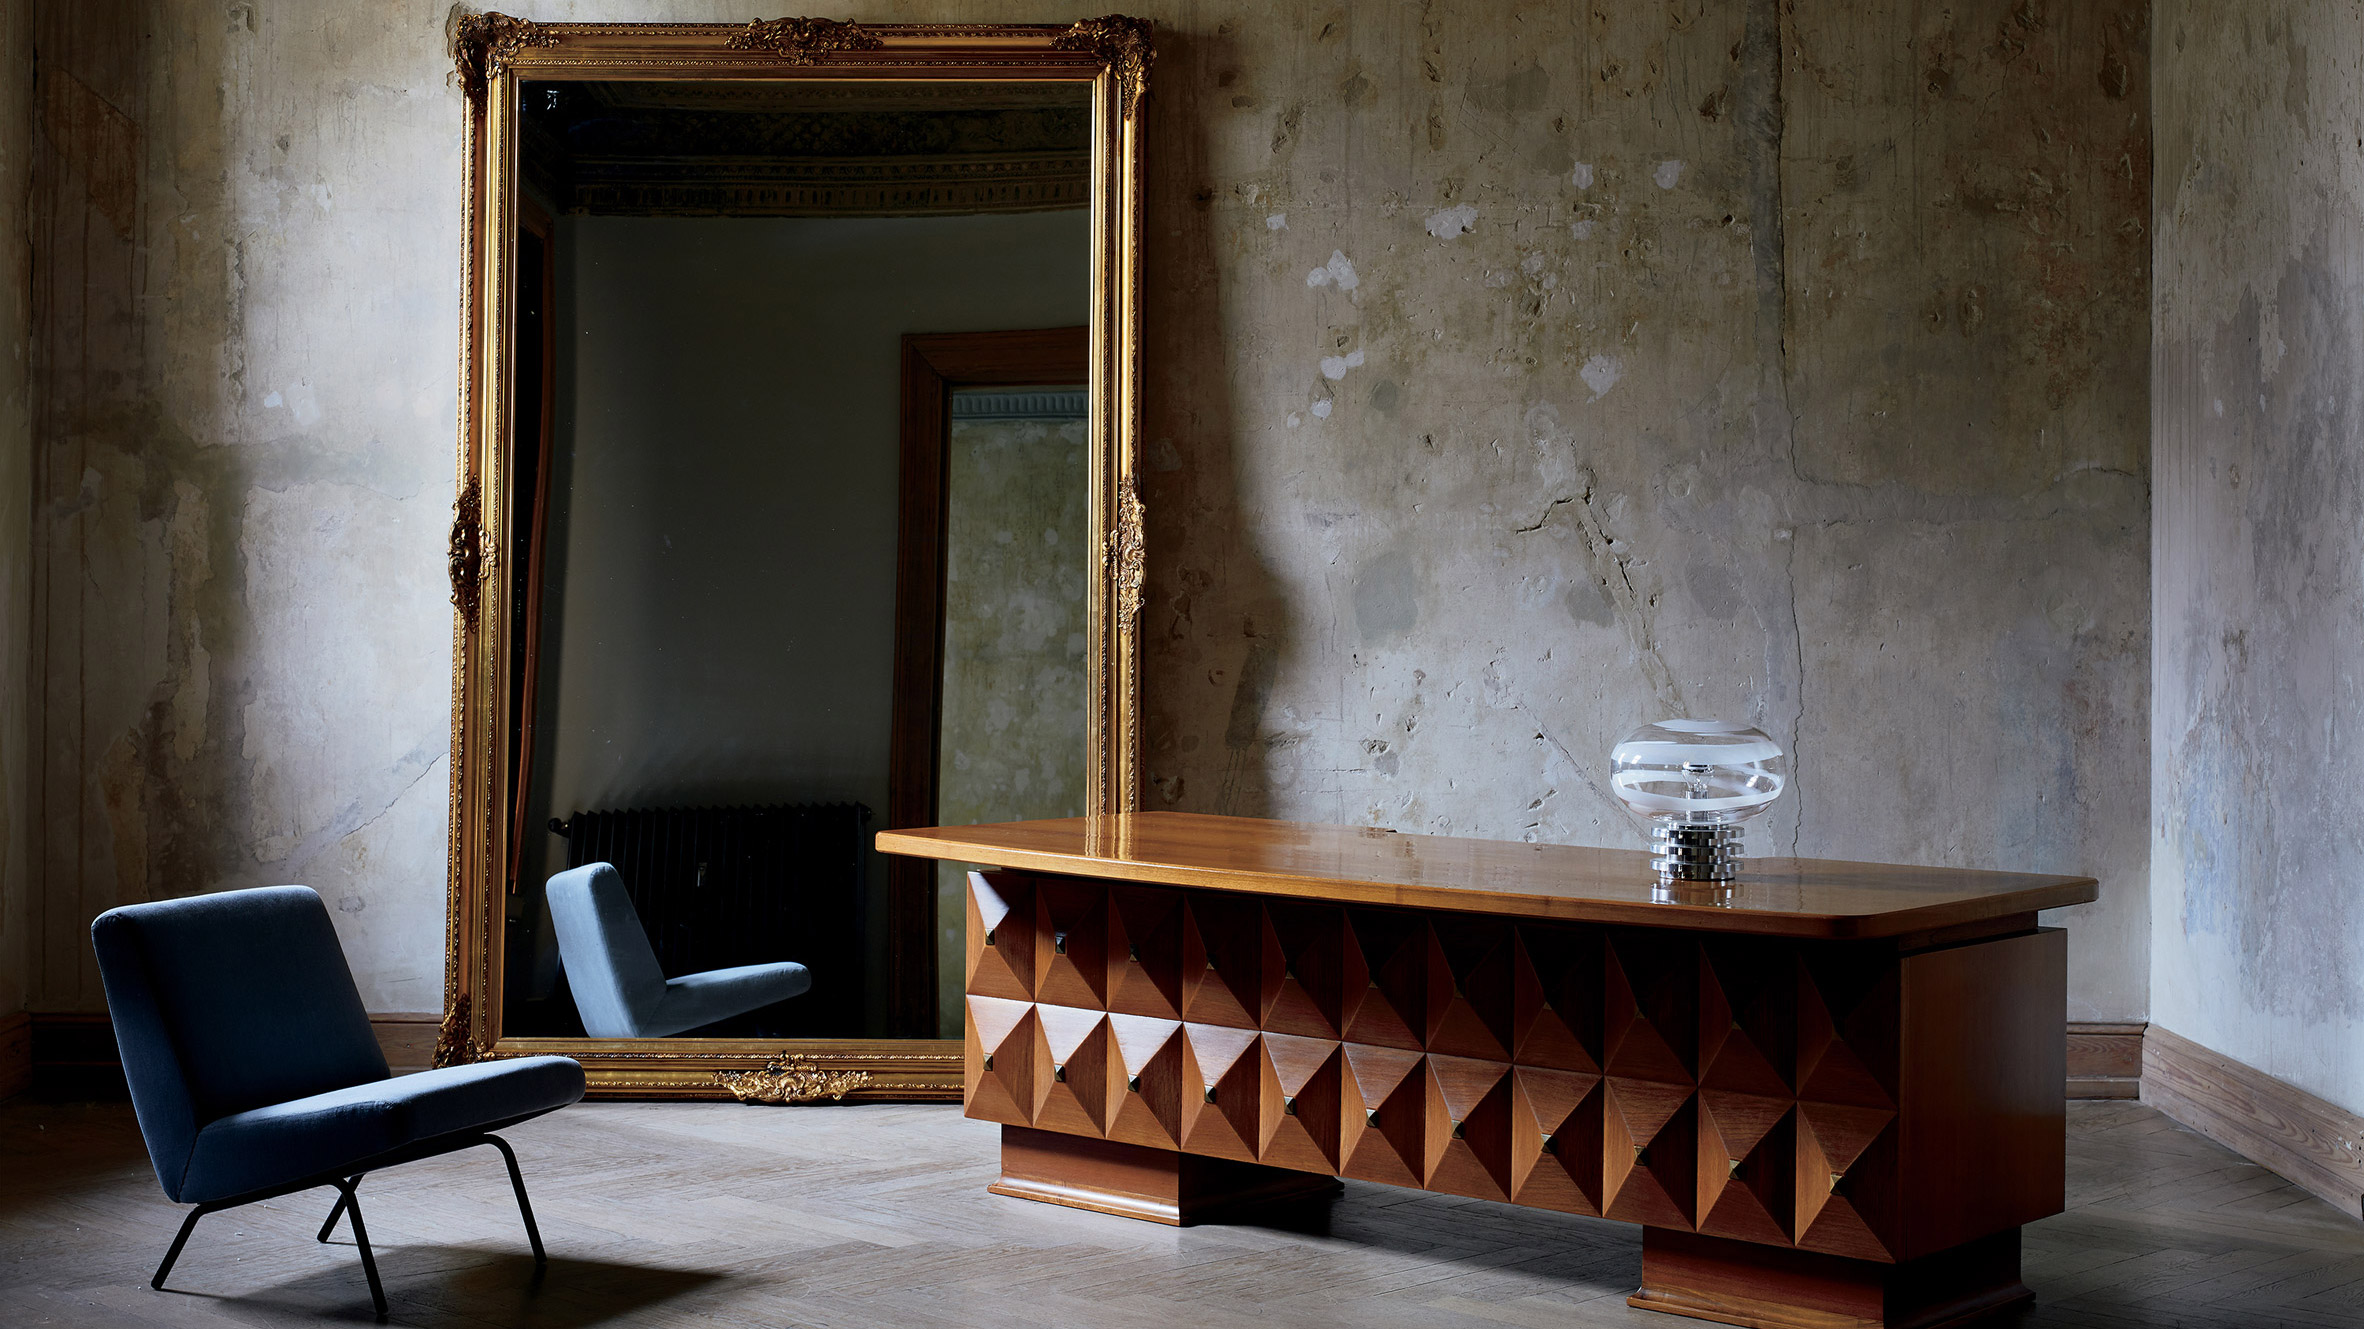 CB13 launches vintage furniture collection curated by Charlie Ferrer